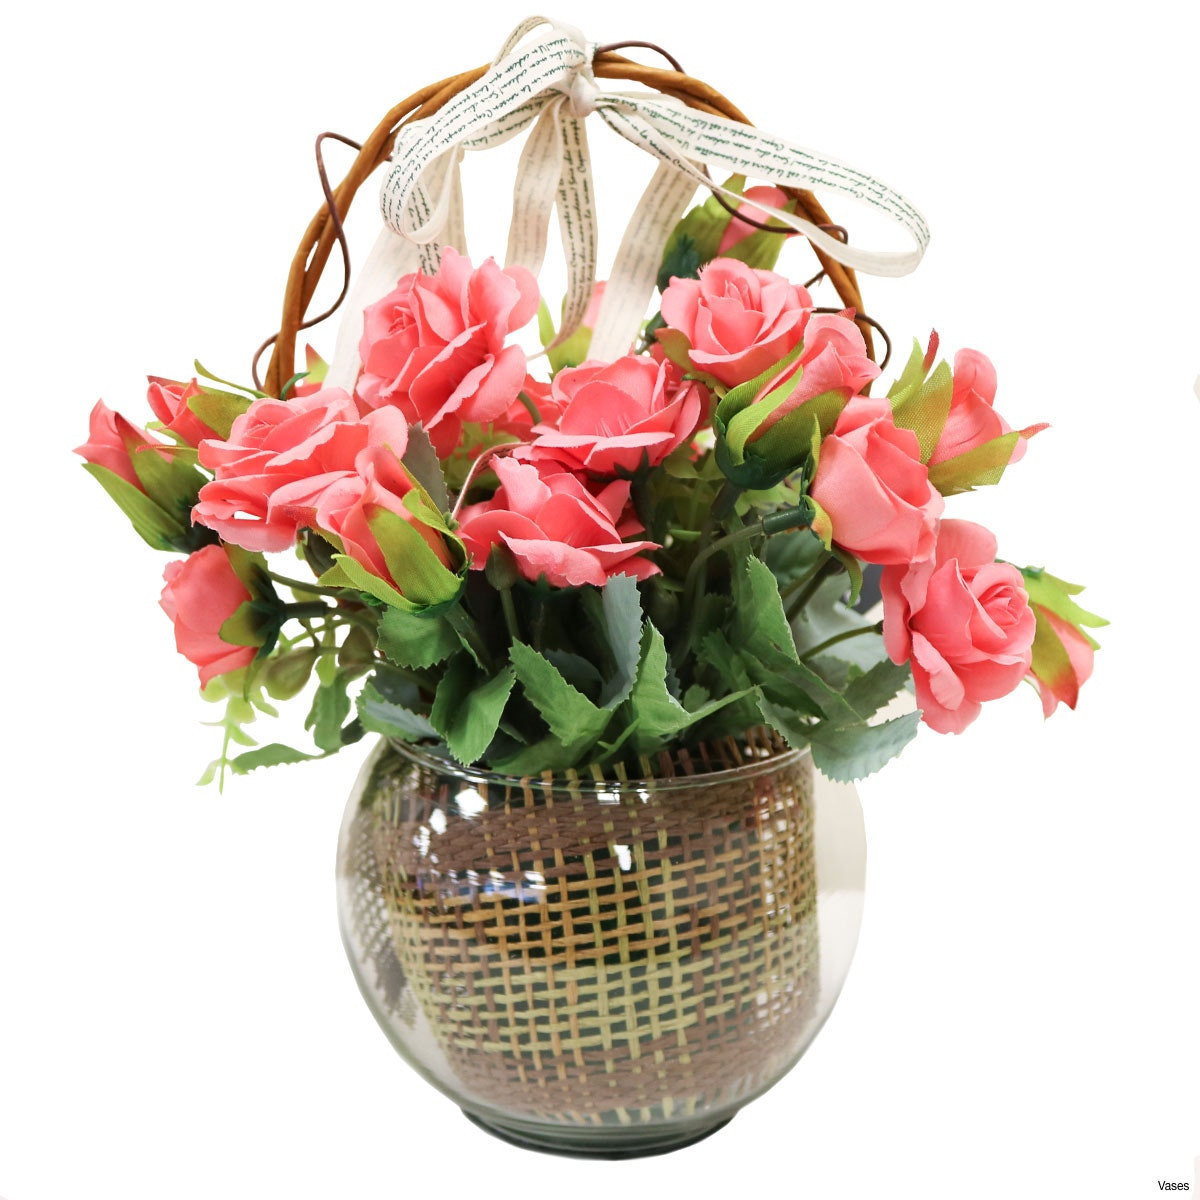 green and gold glass vase of red and gold vase gallery bf142 11km 1200x1200h vases pink flower for bf142 11km 1200x1200h vases pink flower vase i 0d gold inspiration